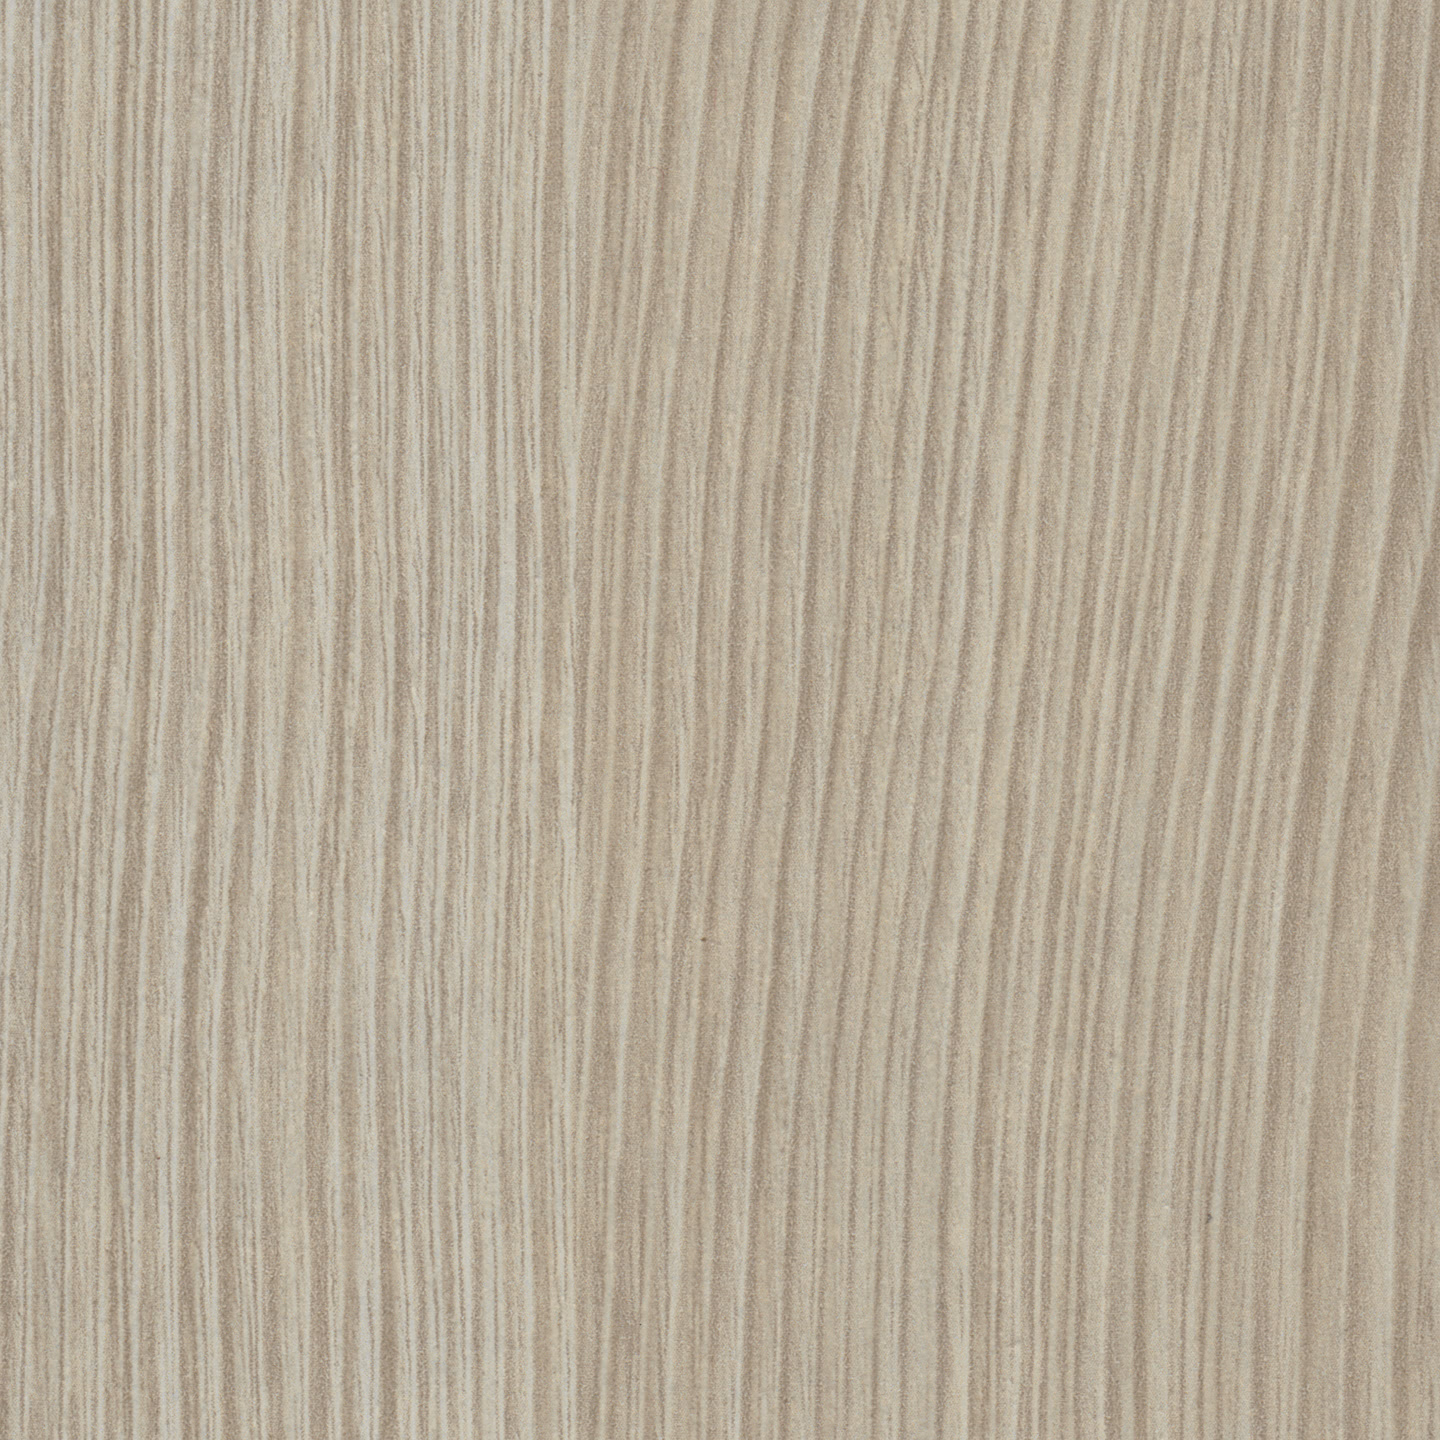 Metro Collection by CLEAF  Cabinet Wood Grain Finish